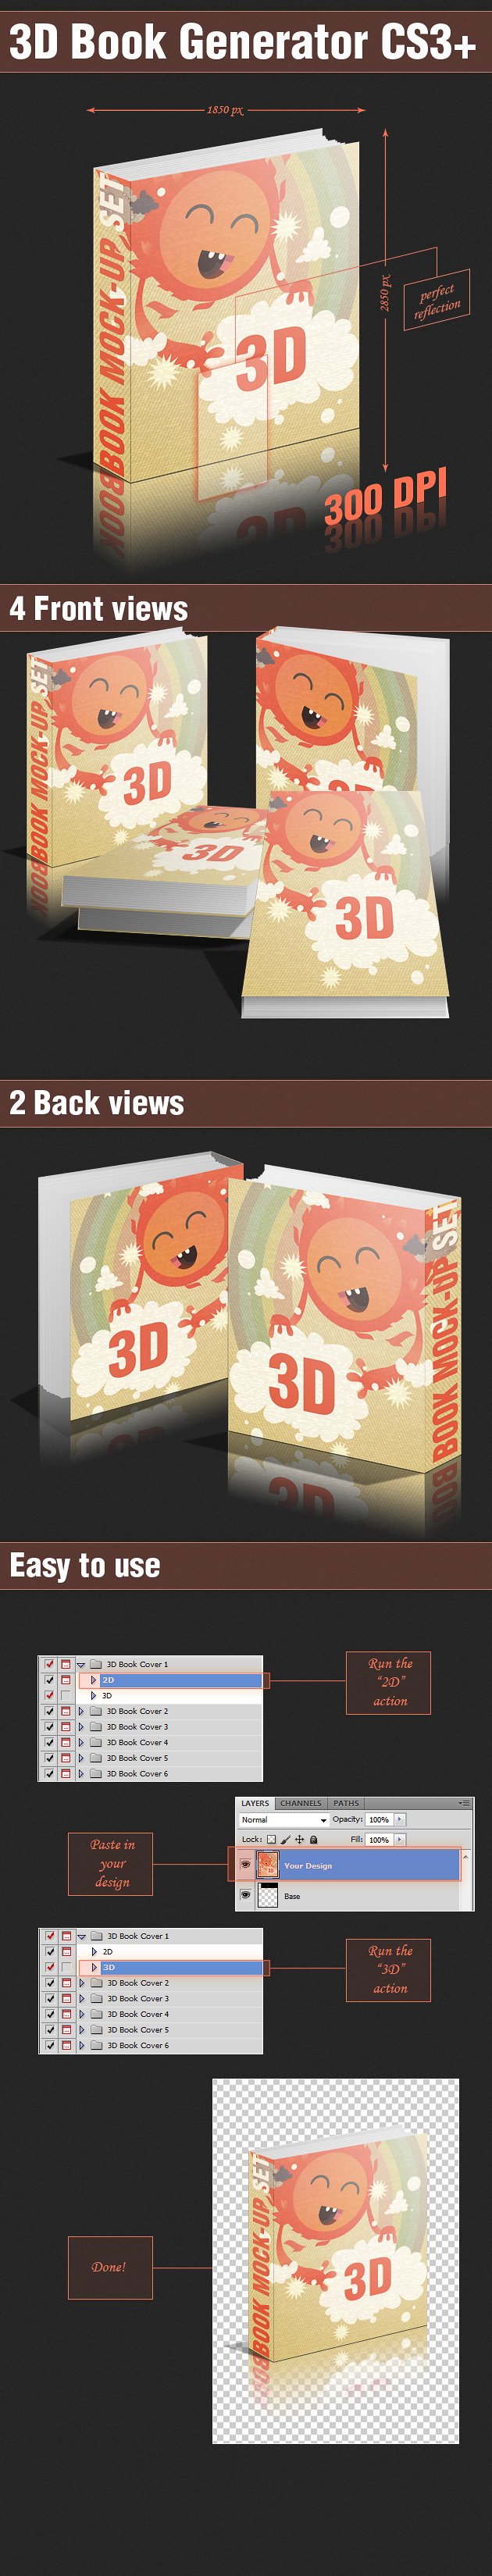 3D-Book-Generator-Ps-Actions 3d book generator large